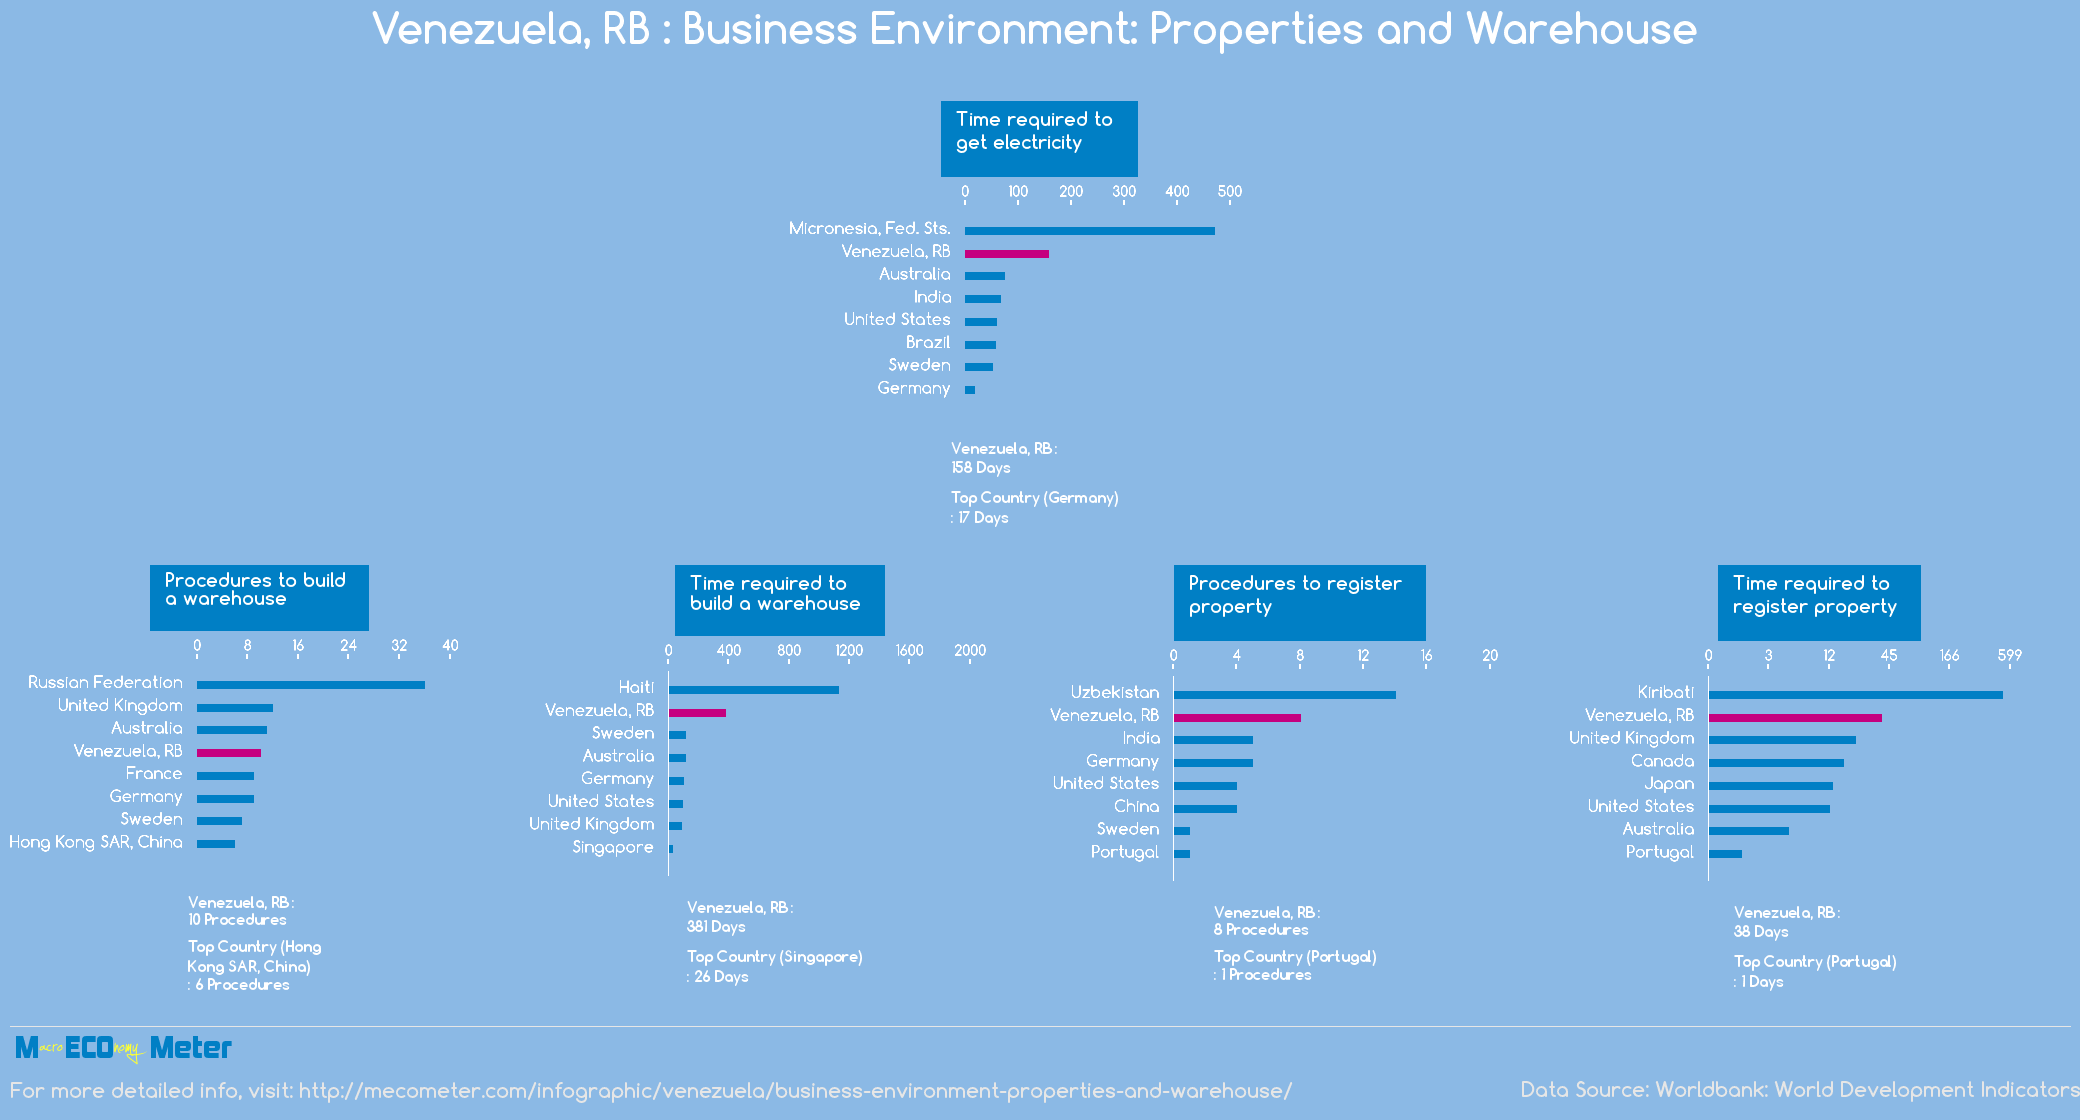 Venezuela, RB : Business Environment: Properties and Warehouse